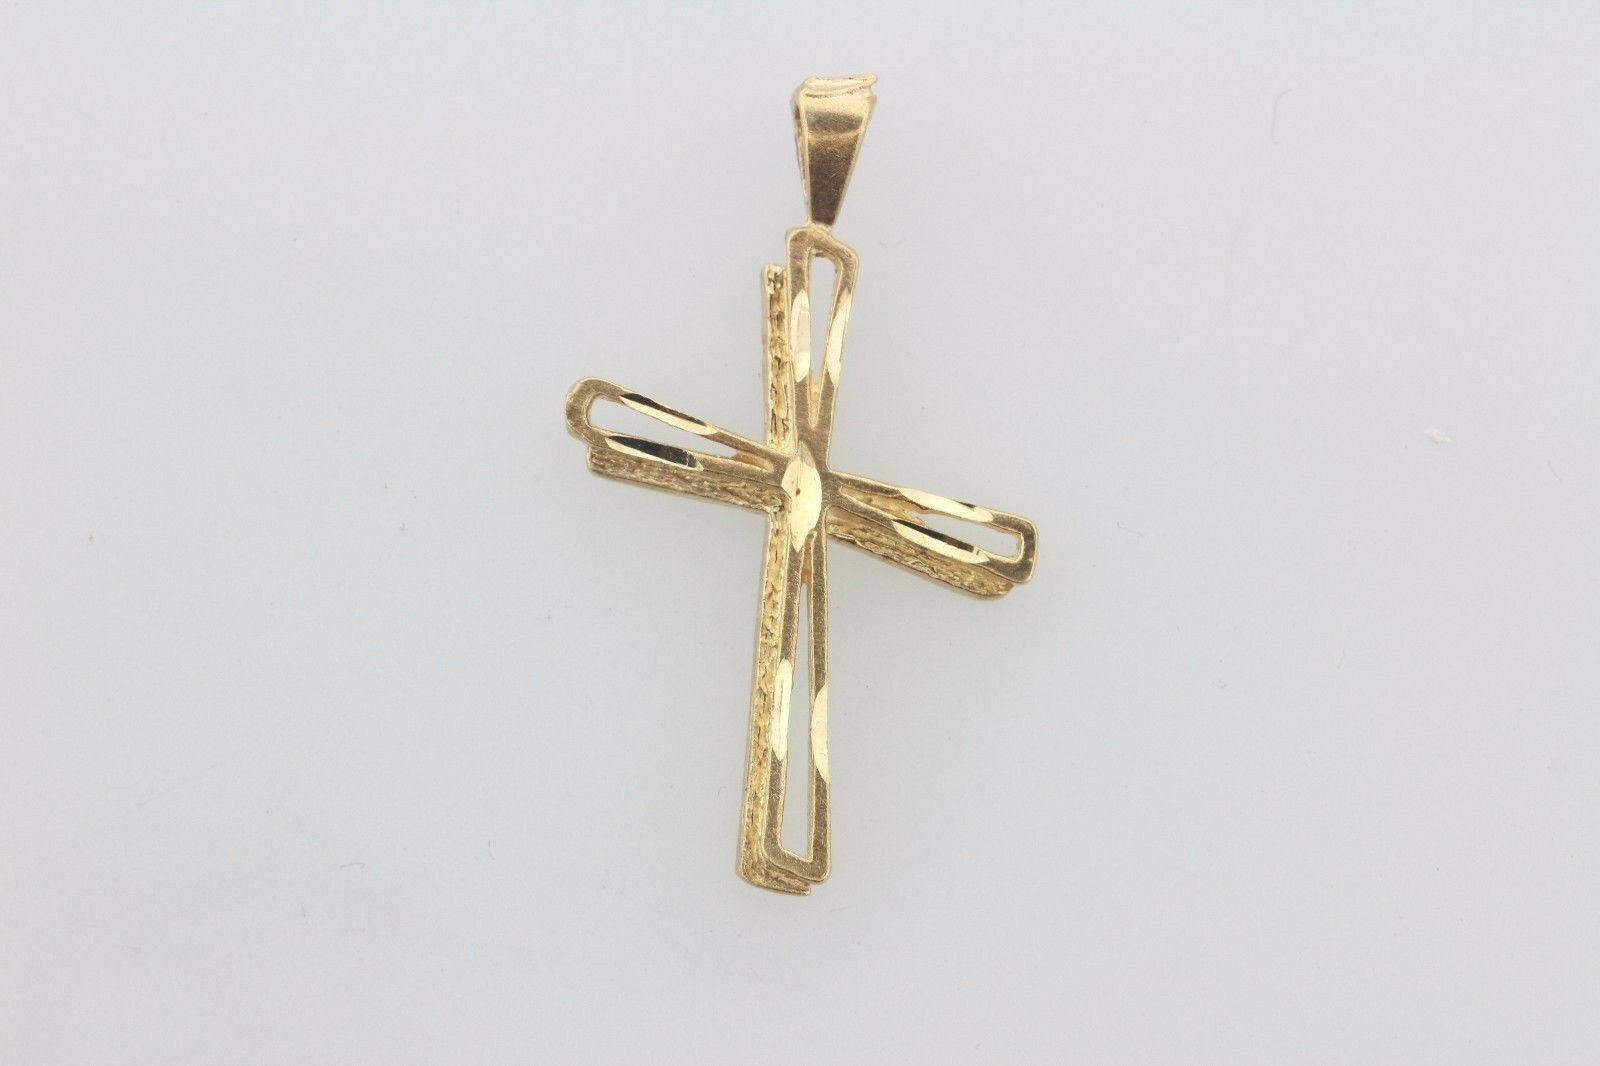 14K Yellow gold Slanted Layered Double Cross Charm Pendant